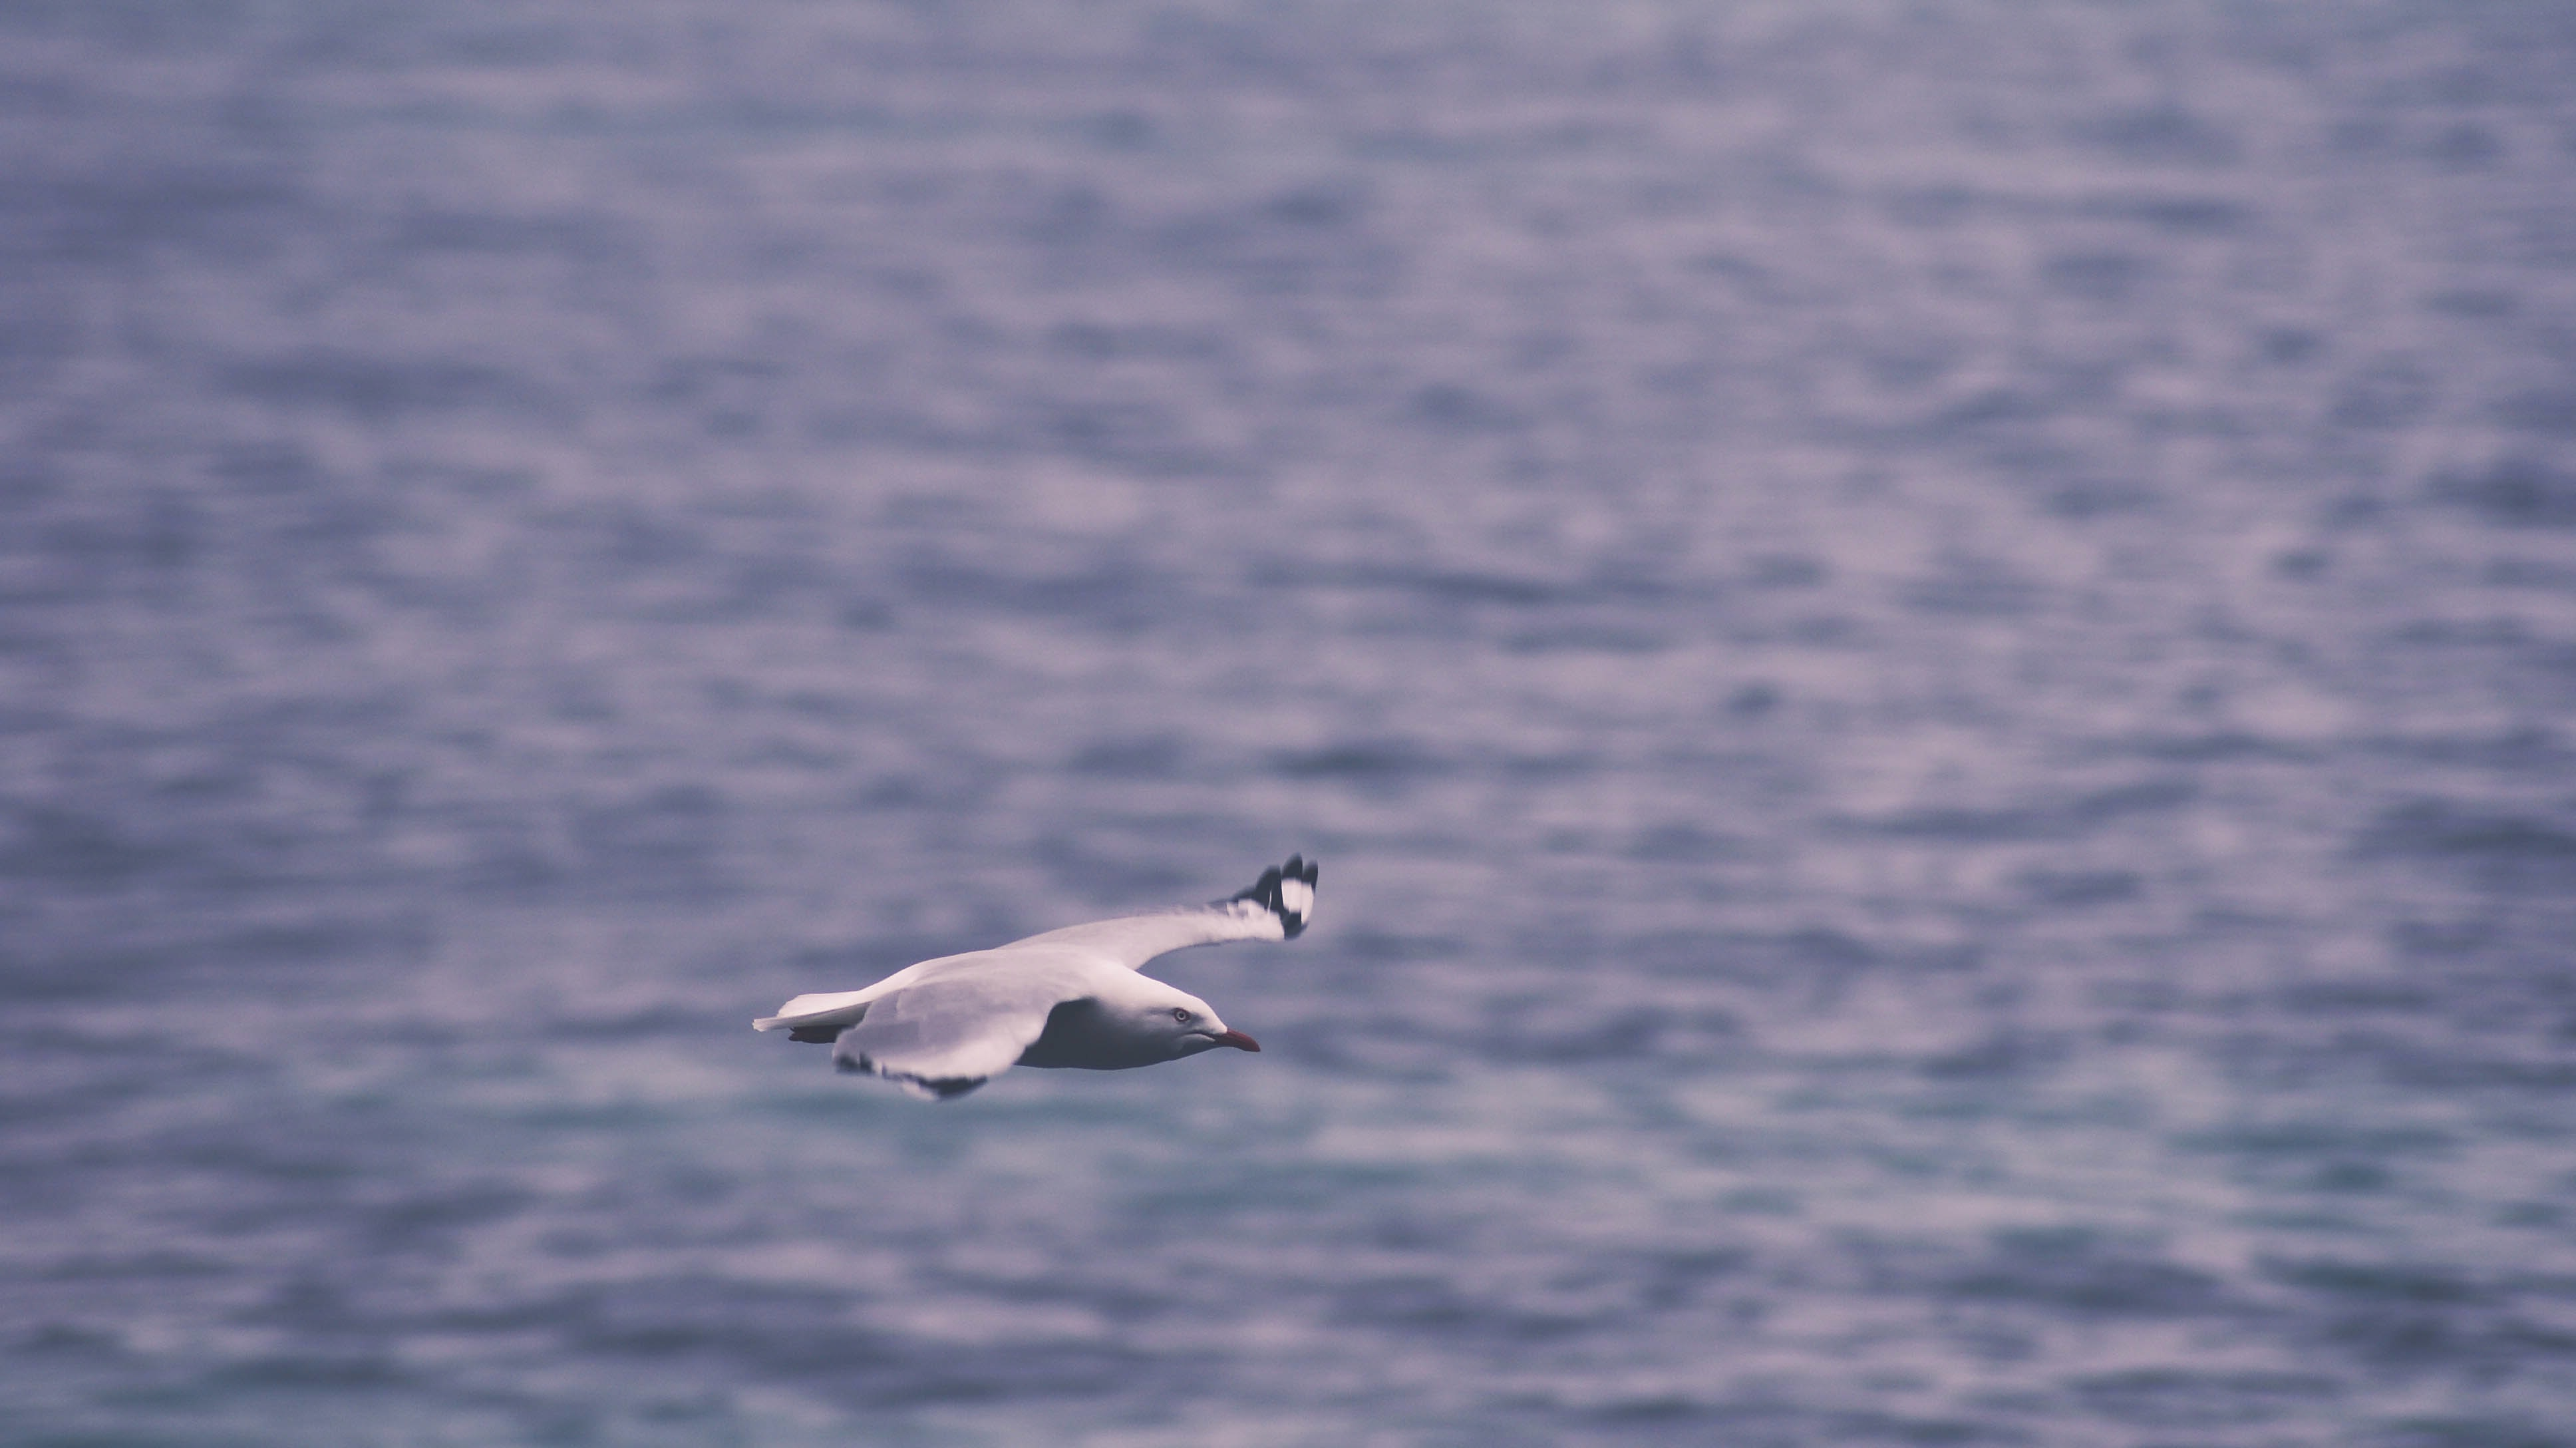 white seagull mid-flight above water duringday